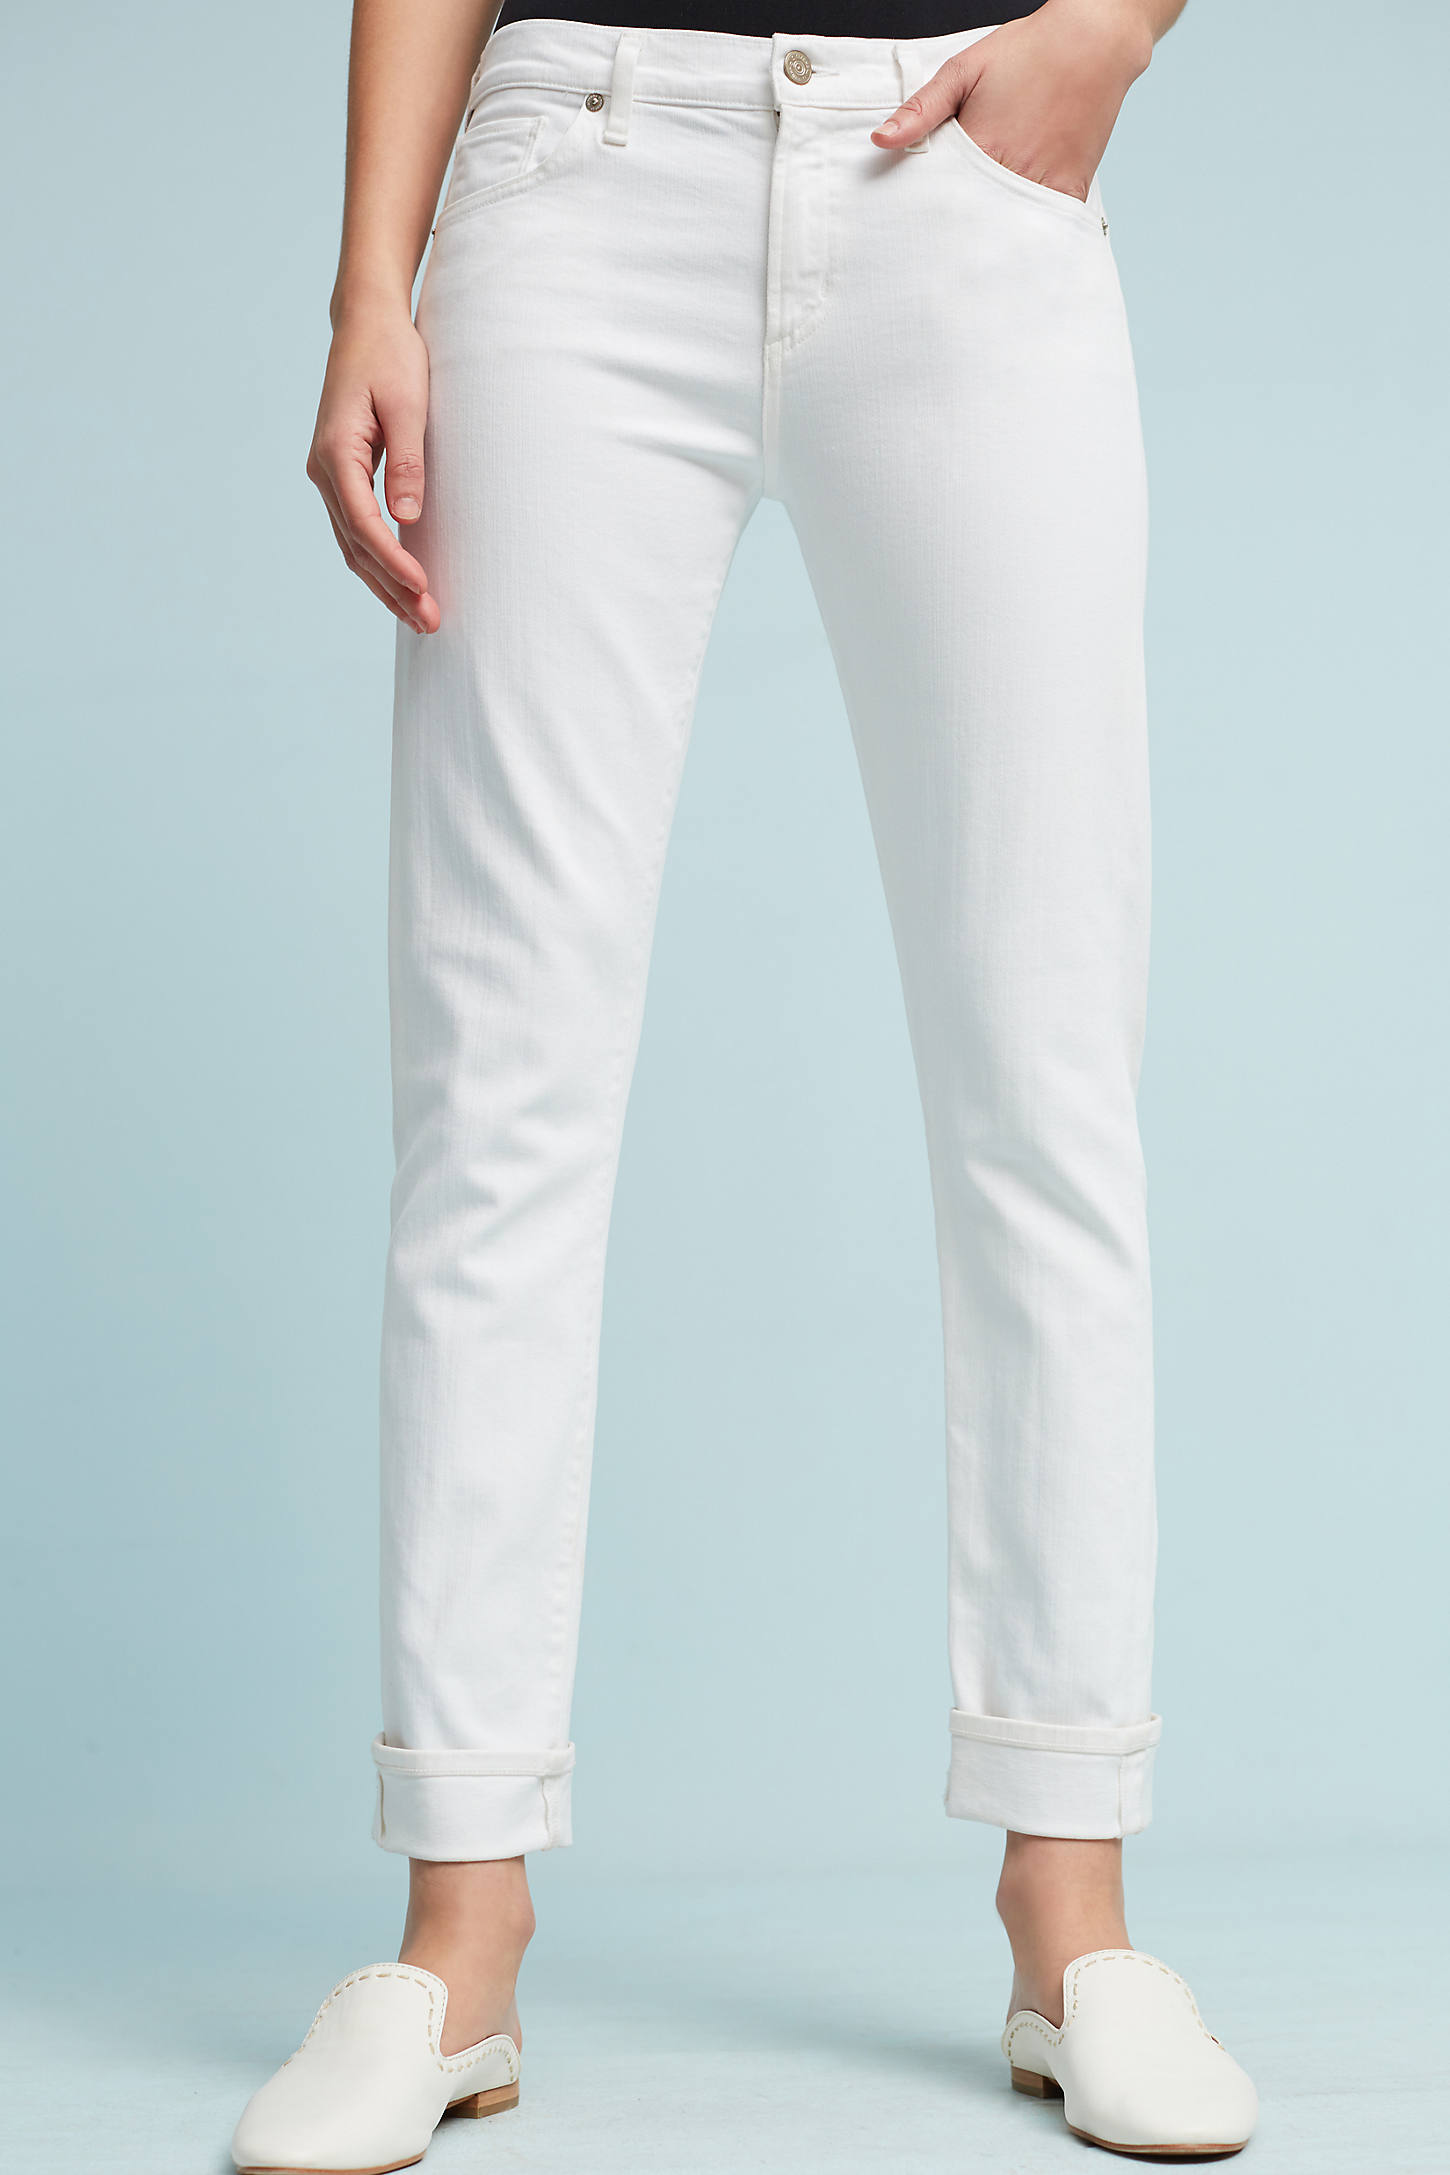 Citizens Of Humanity Jazmin High-Rise Slim Straight Jeans